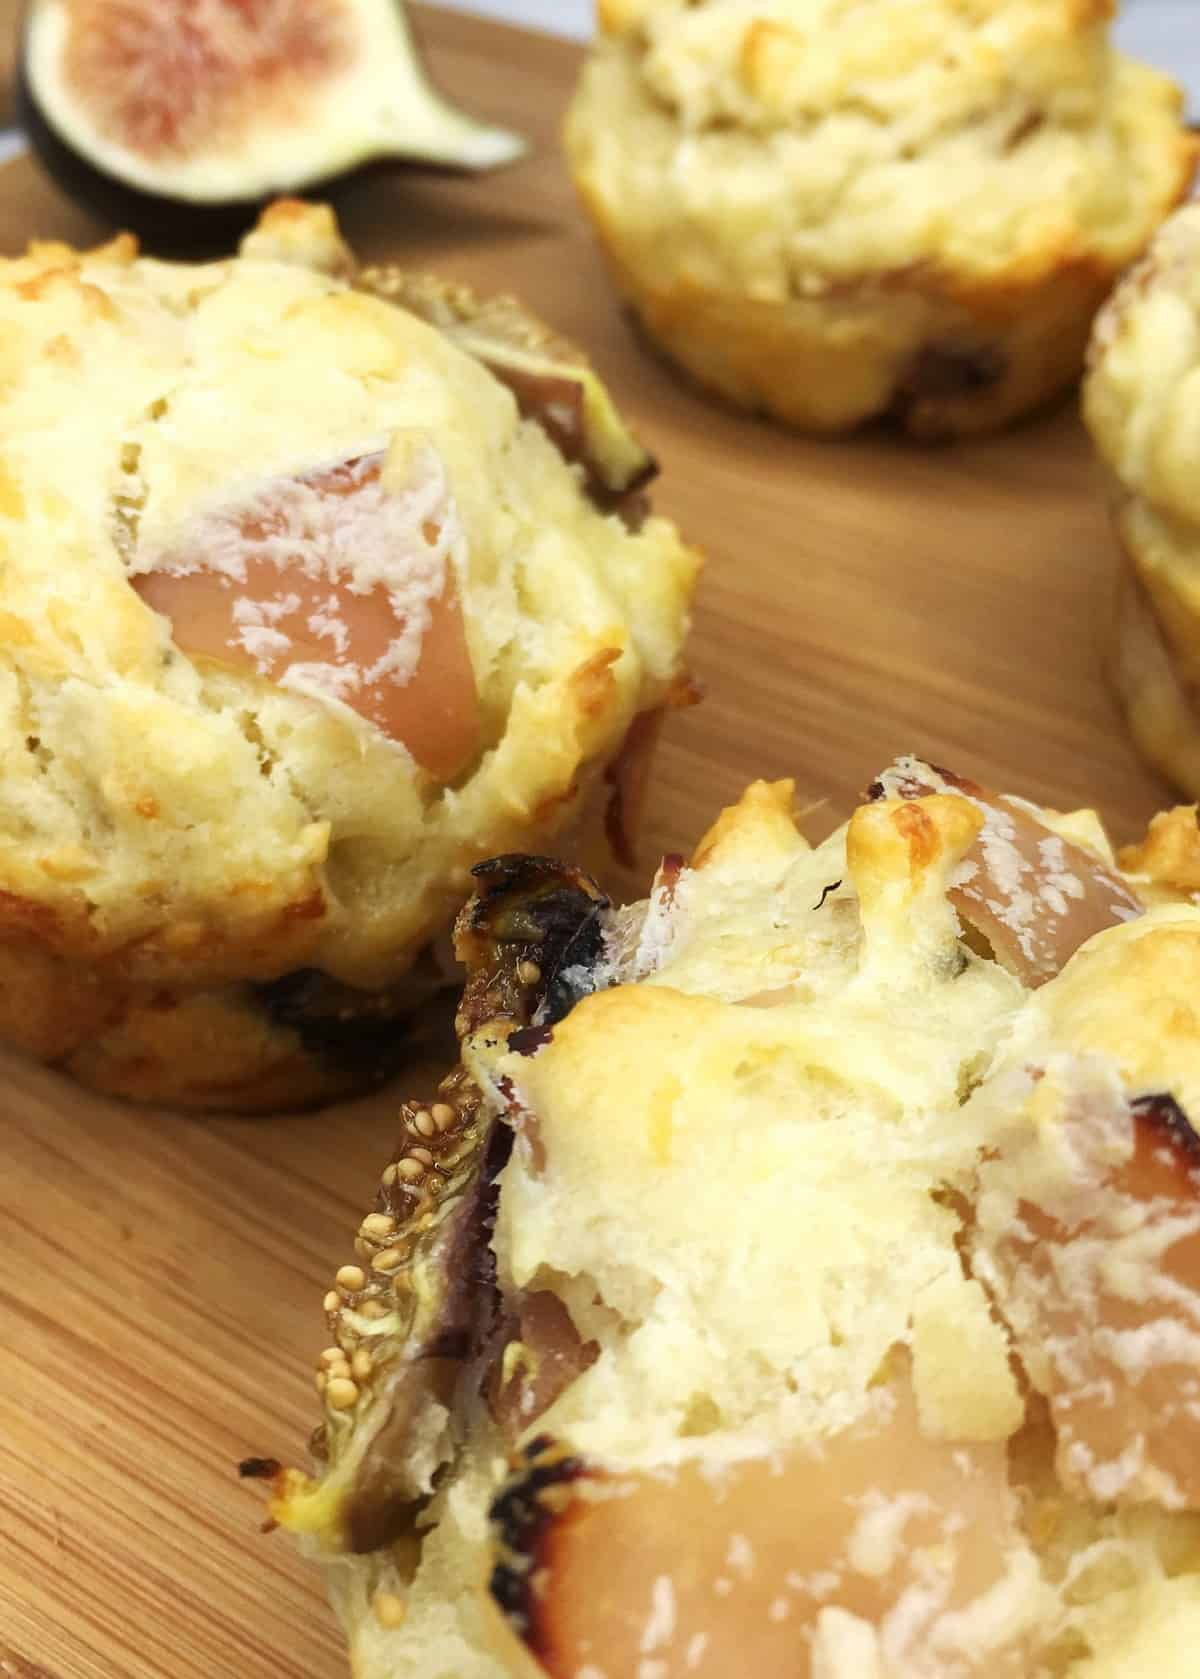 A batch of breakfast muffins filled with ham and figs on a wooden board: Close up